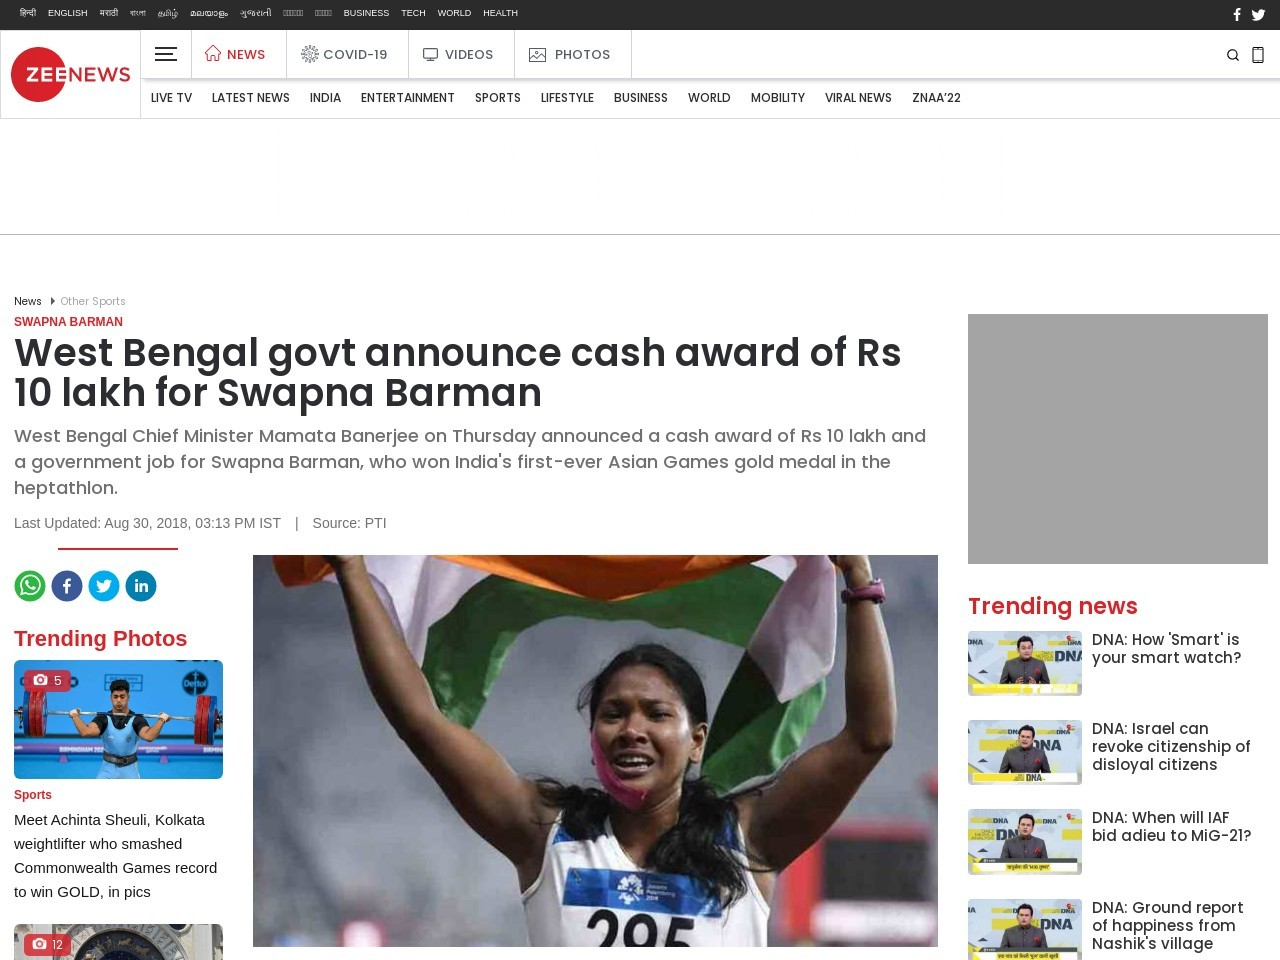 West Bengal govt announce cash award of Rs 10 lakh for Swapna Barman